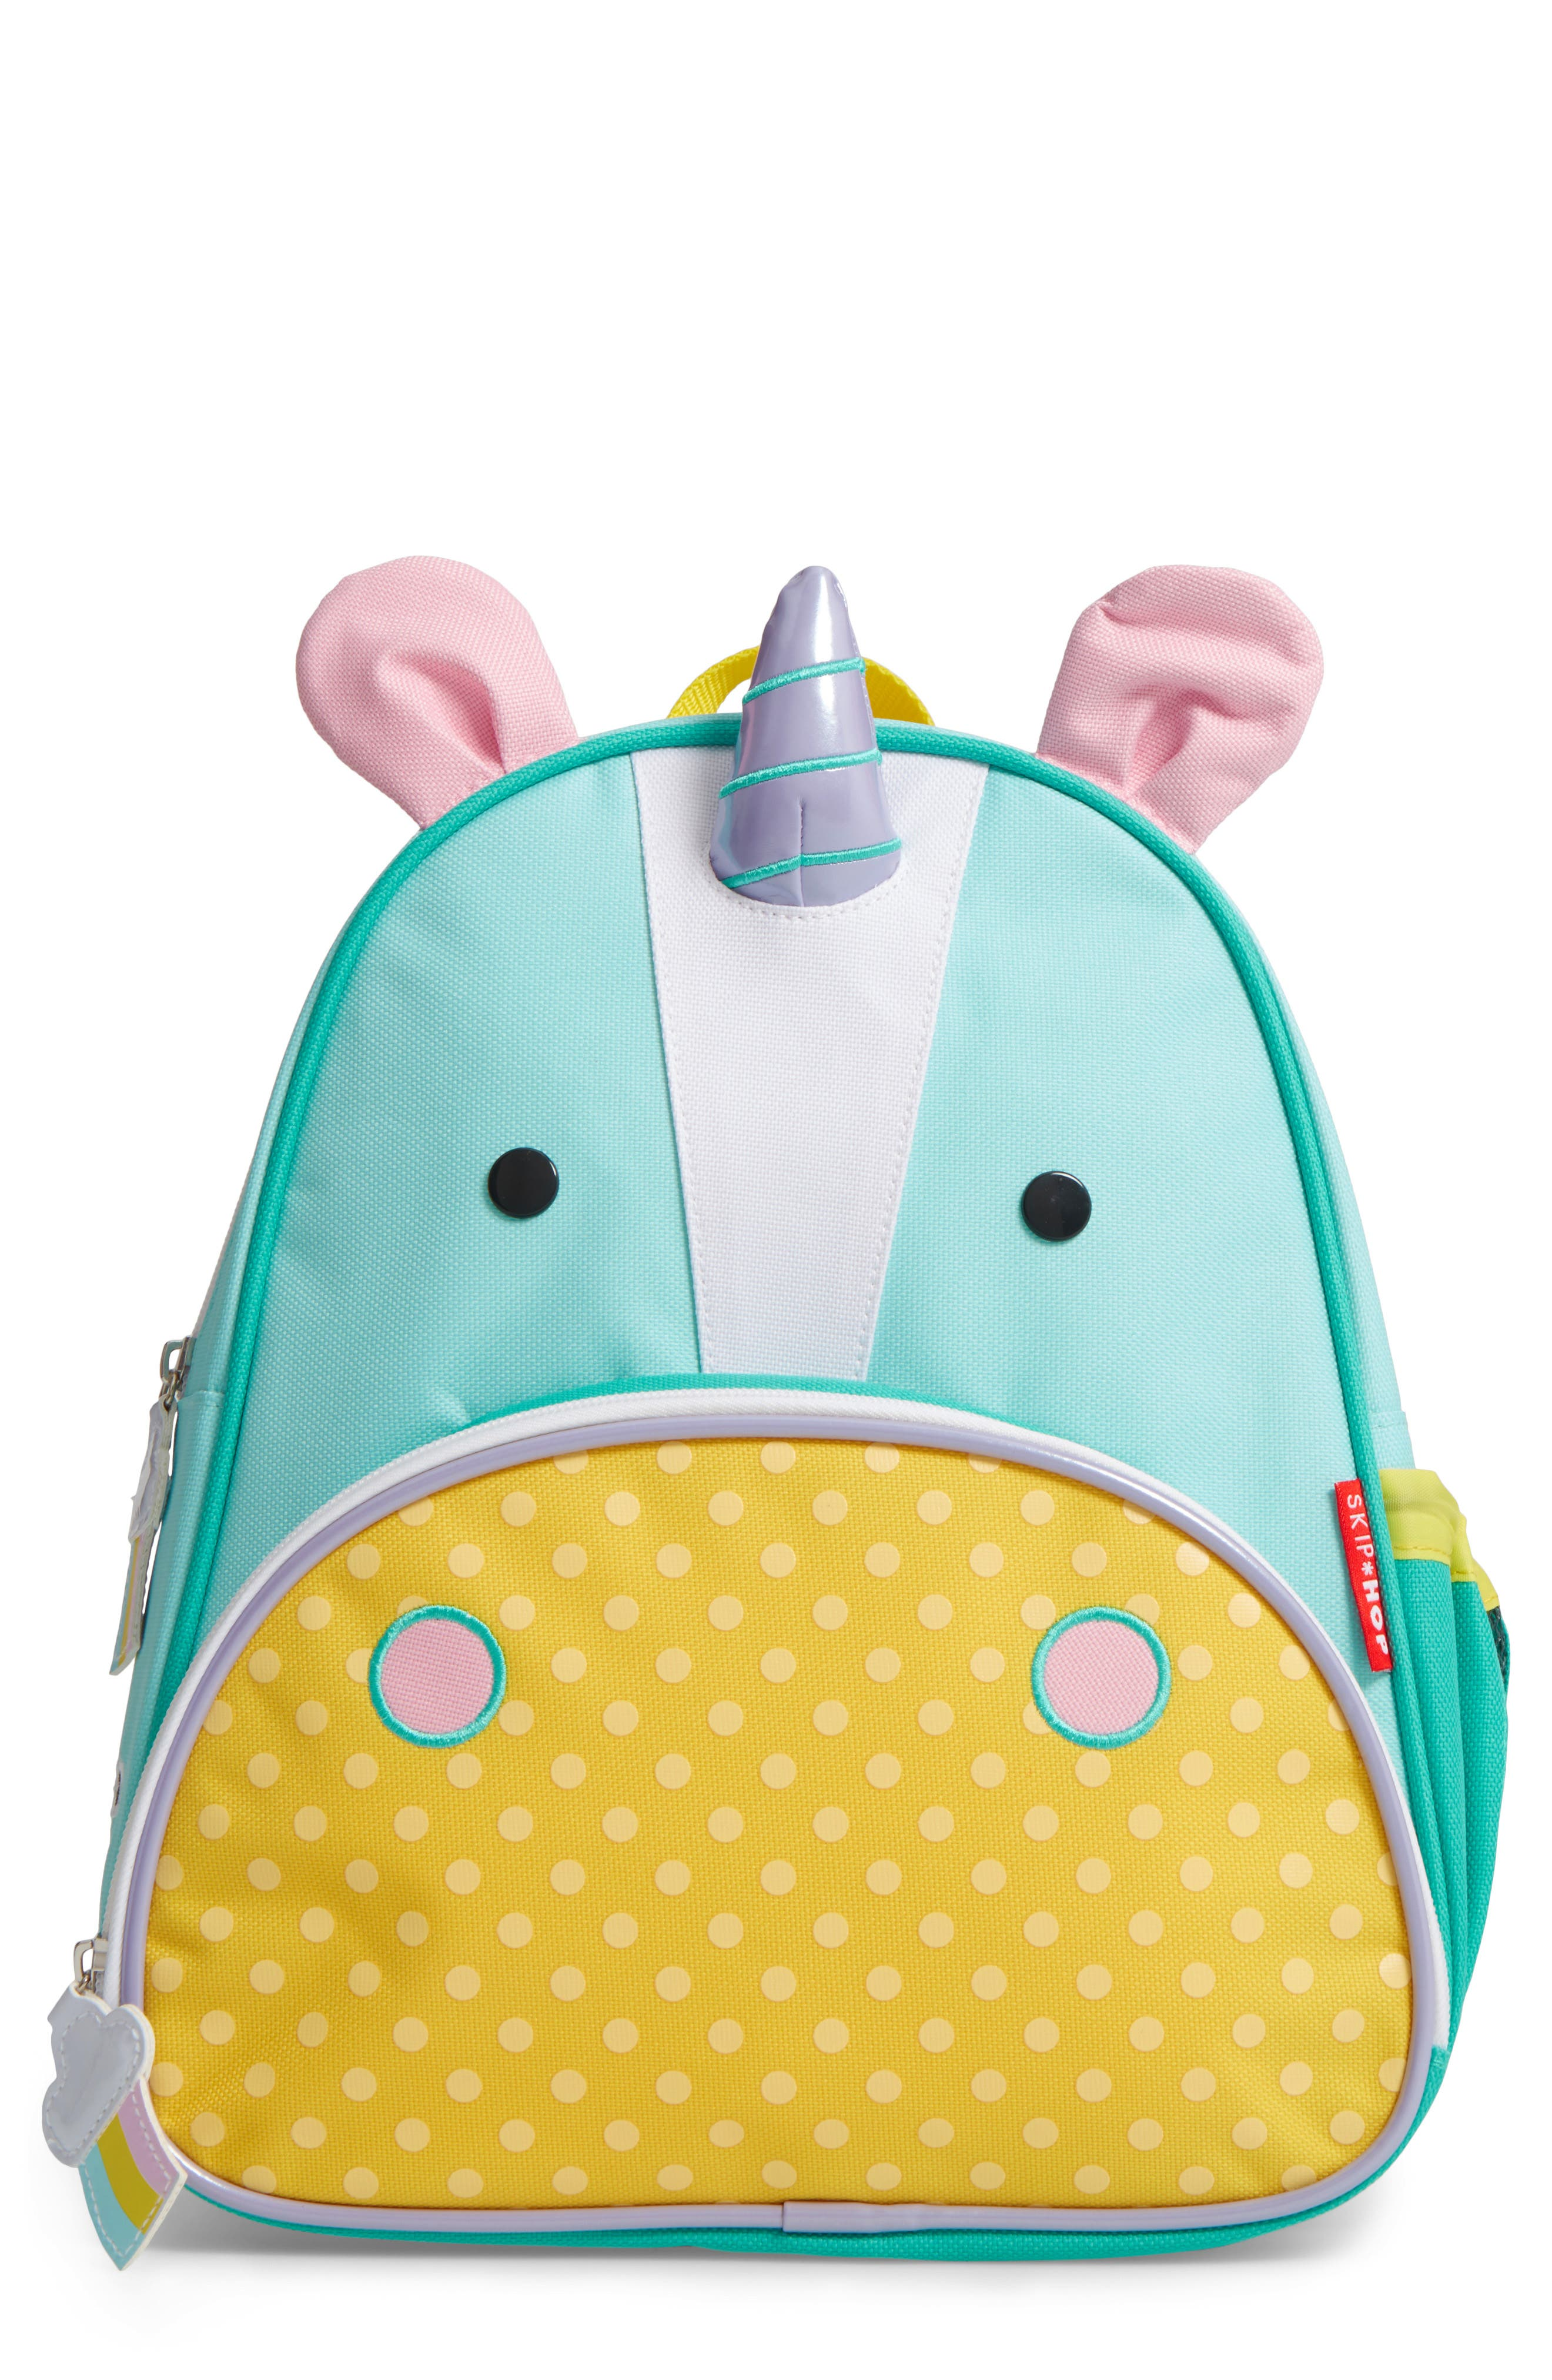 Zoo Pack Backpack,                             Alternate thumbnail 2, color,                             YELLOW